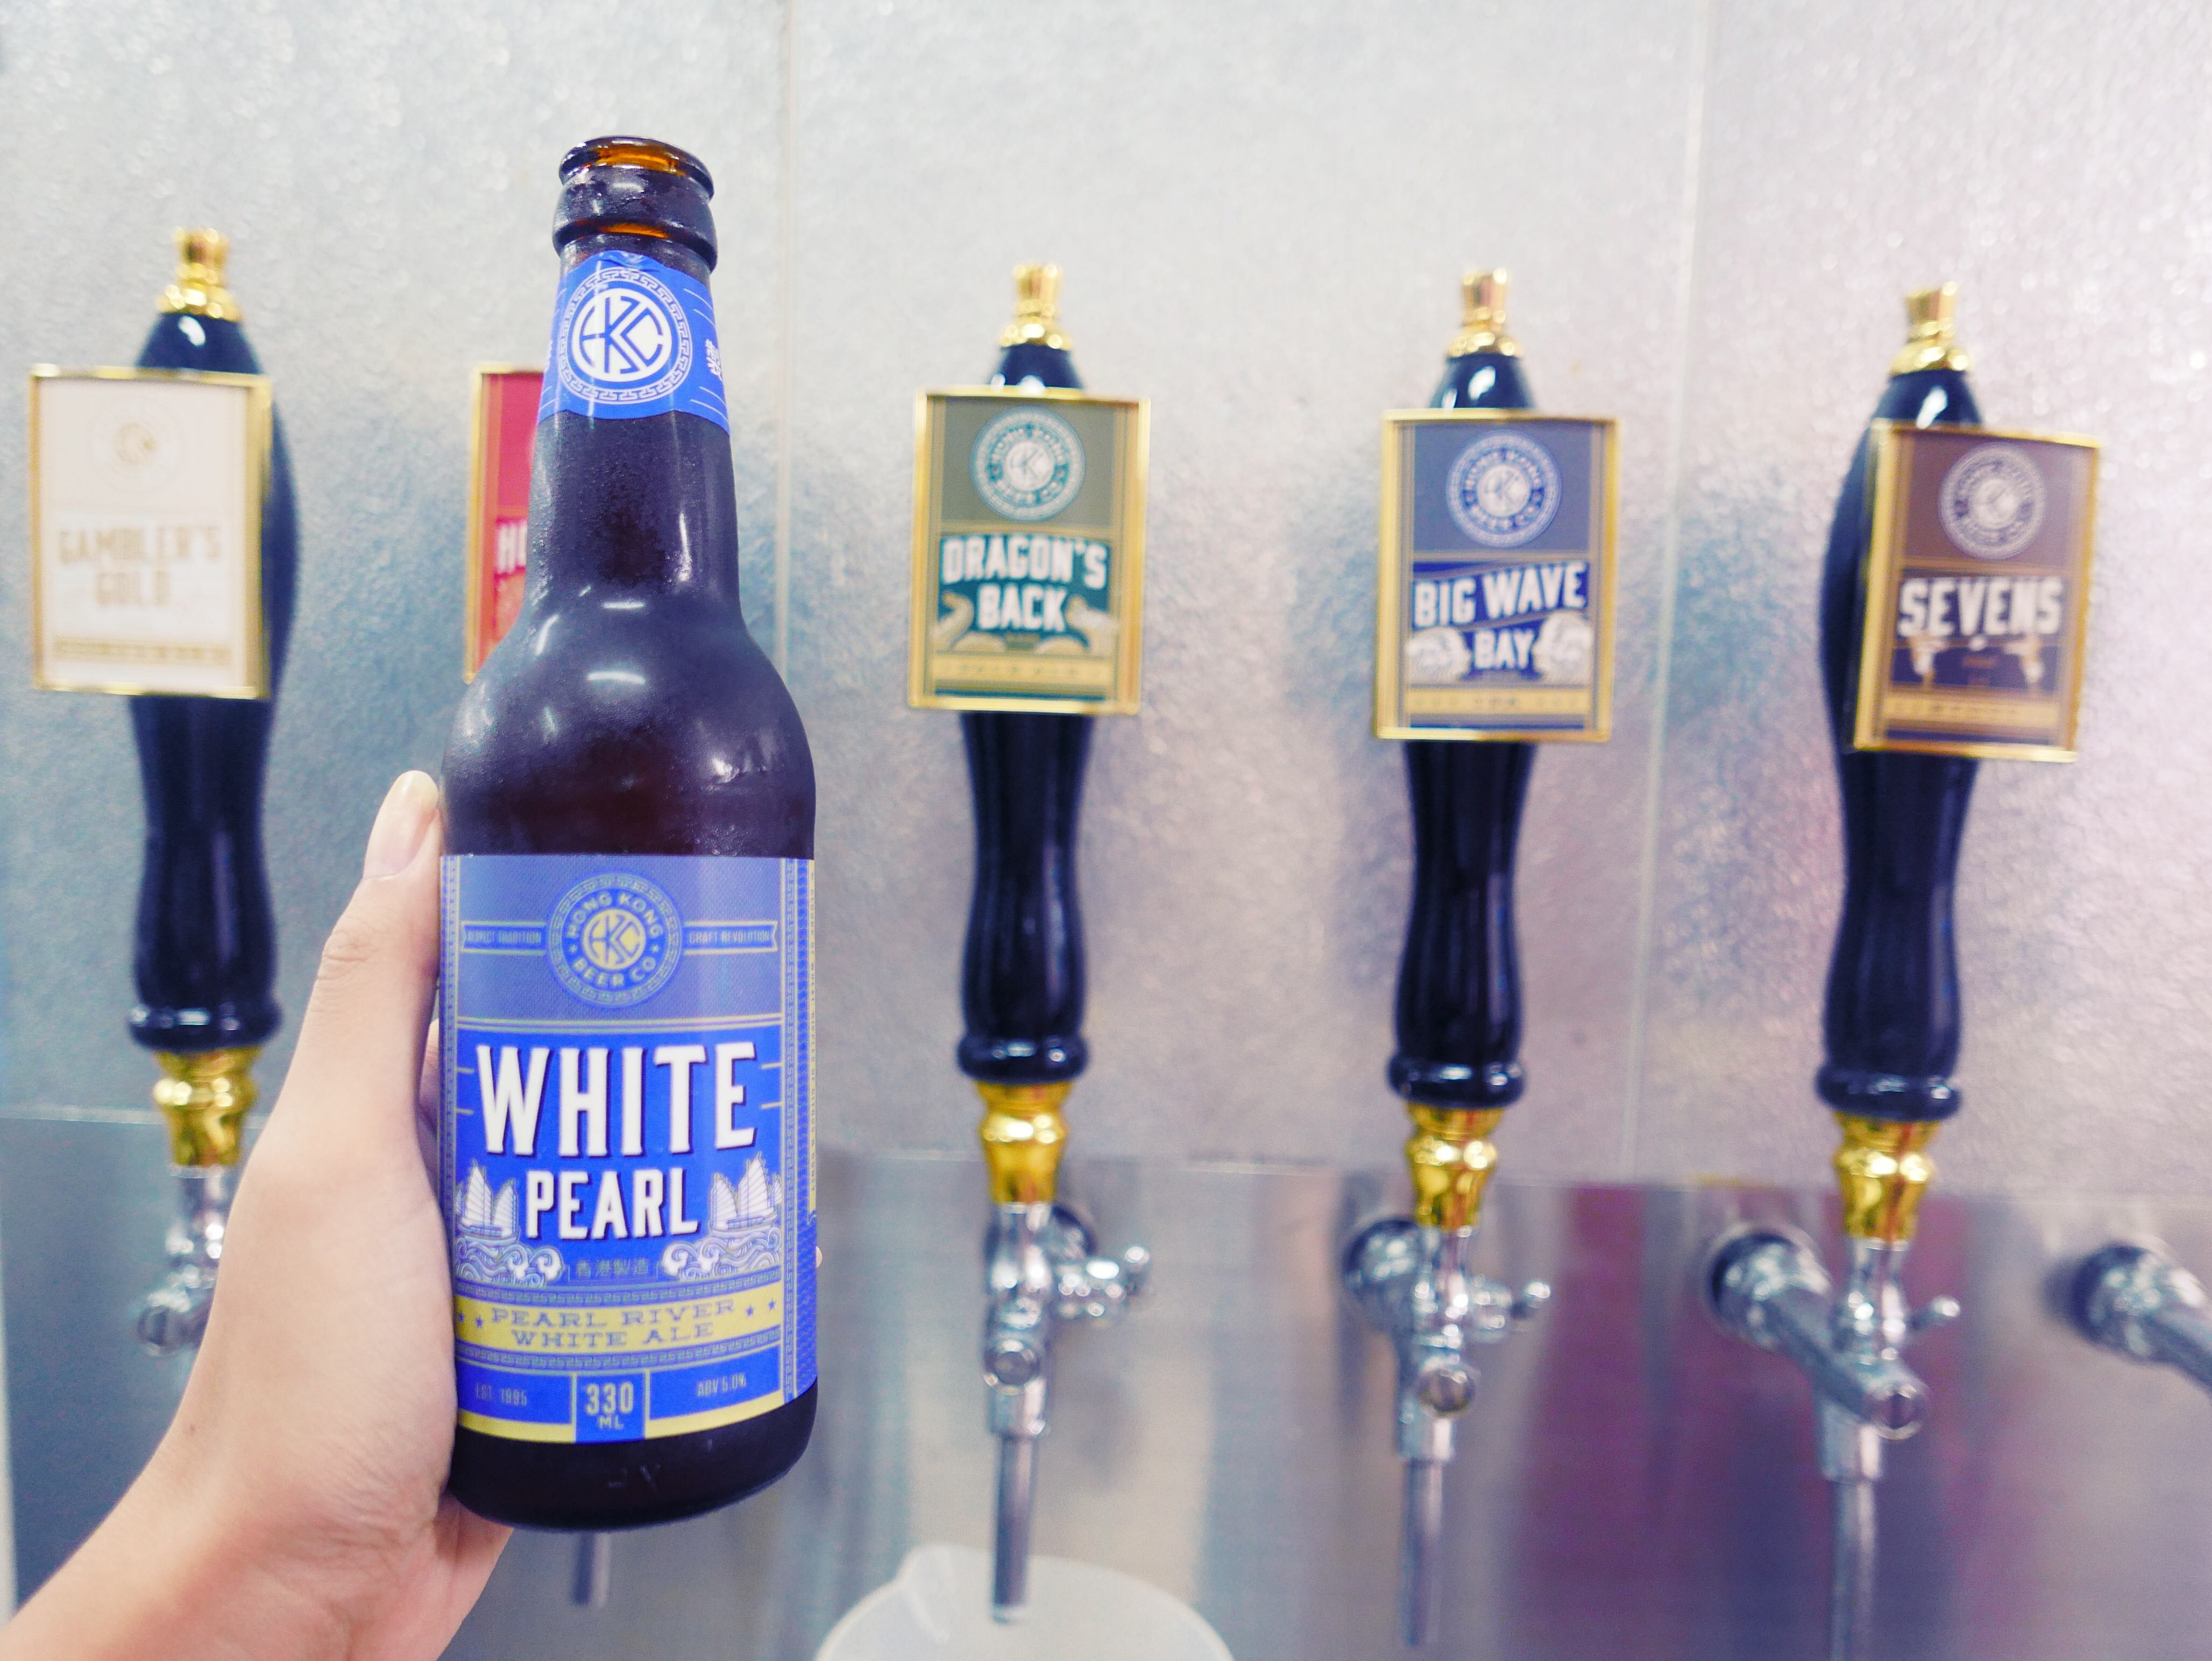 HK Beer Co. White Pearl River White Ale